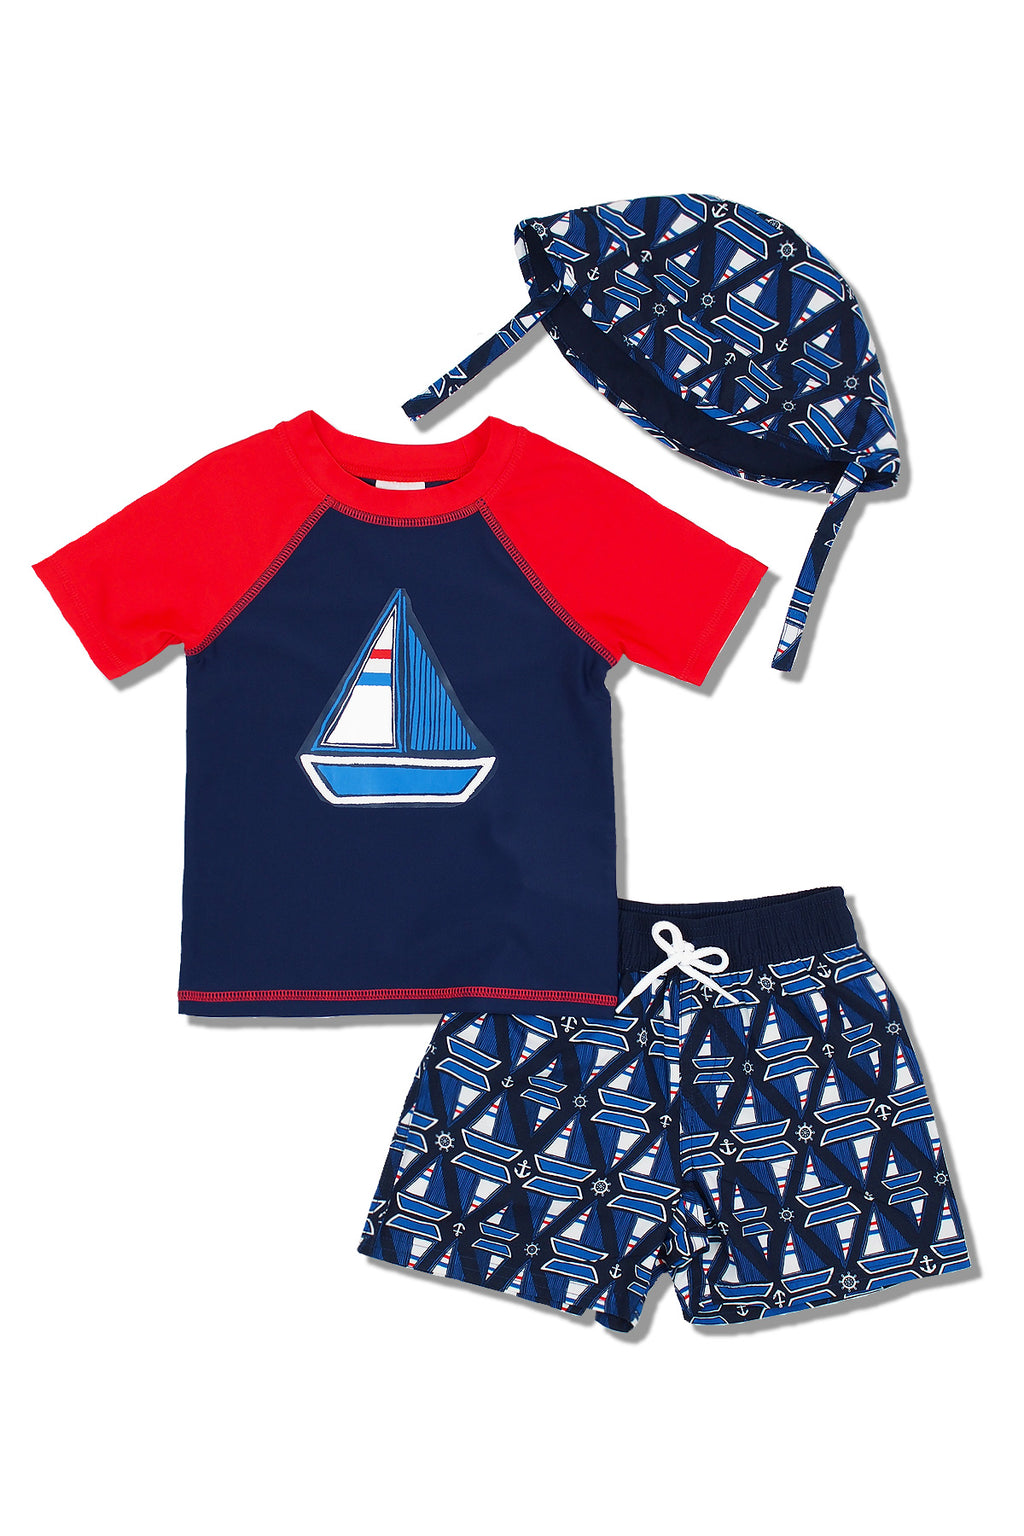 Boys Sailboat Geo Short Sleeve Rash Guard & Swim Trunks With Bucket Hat 3pc Set, Navy